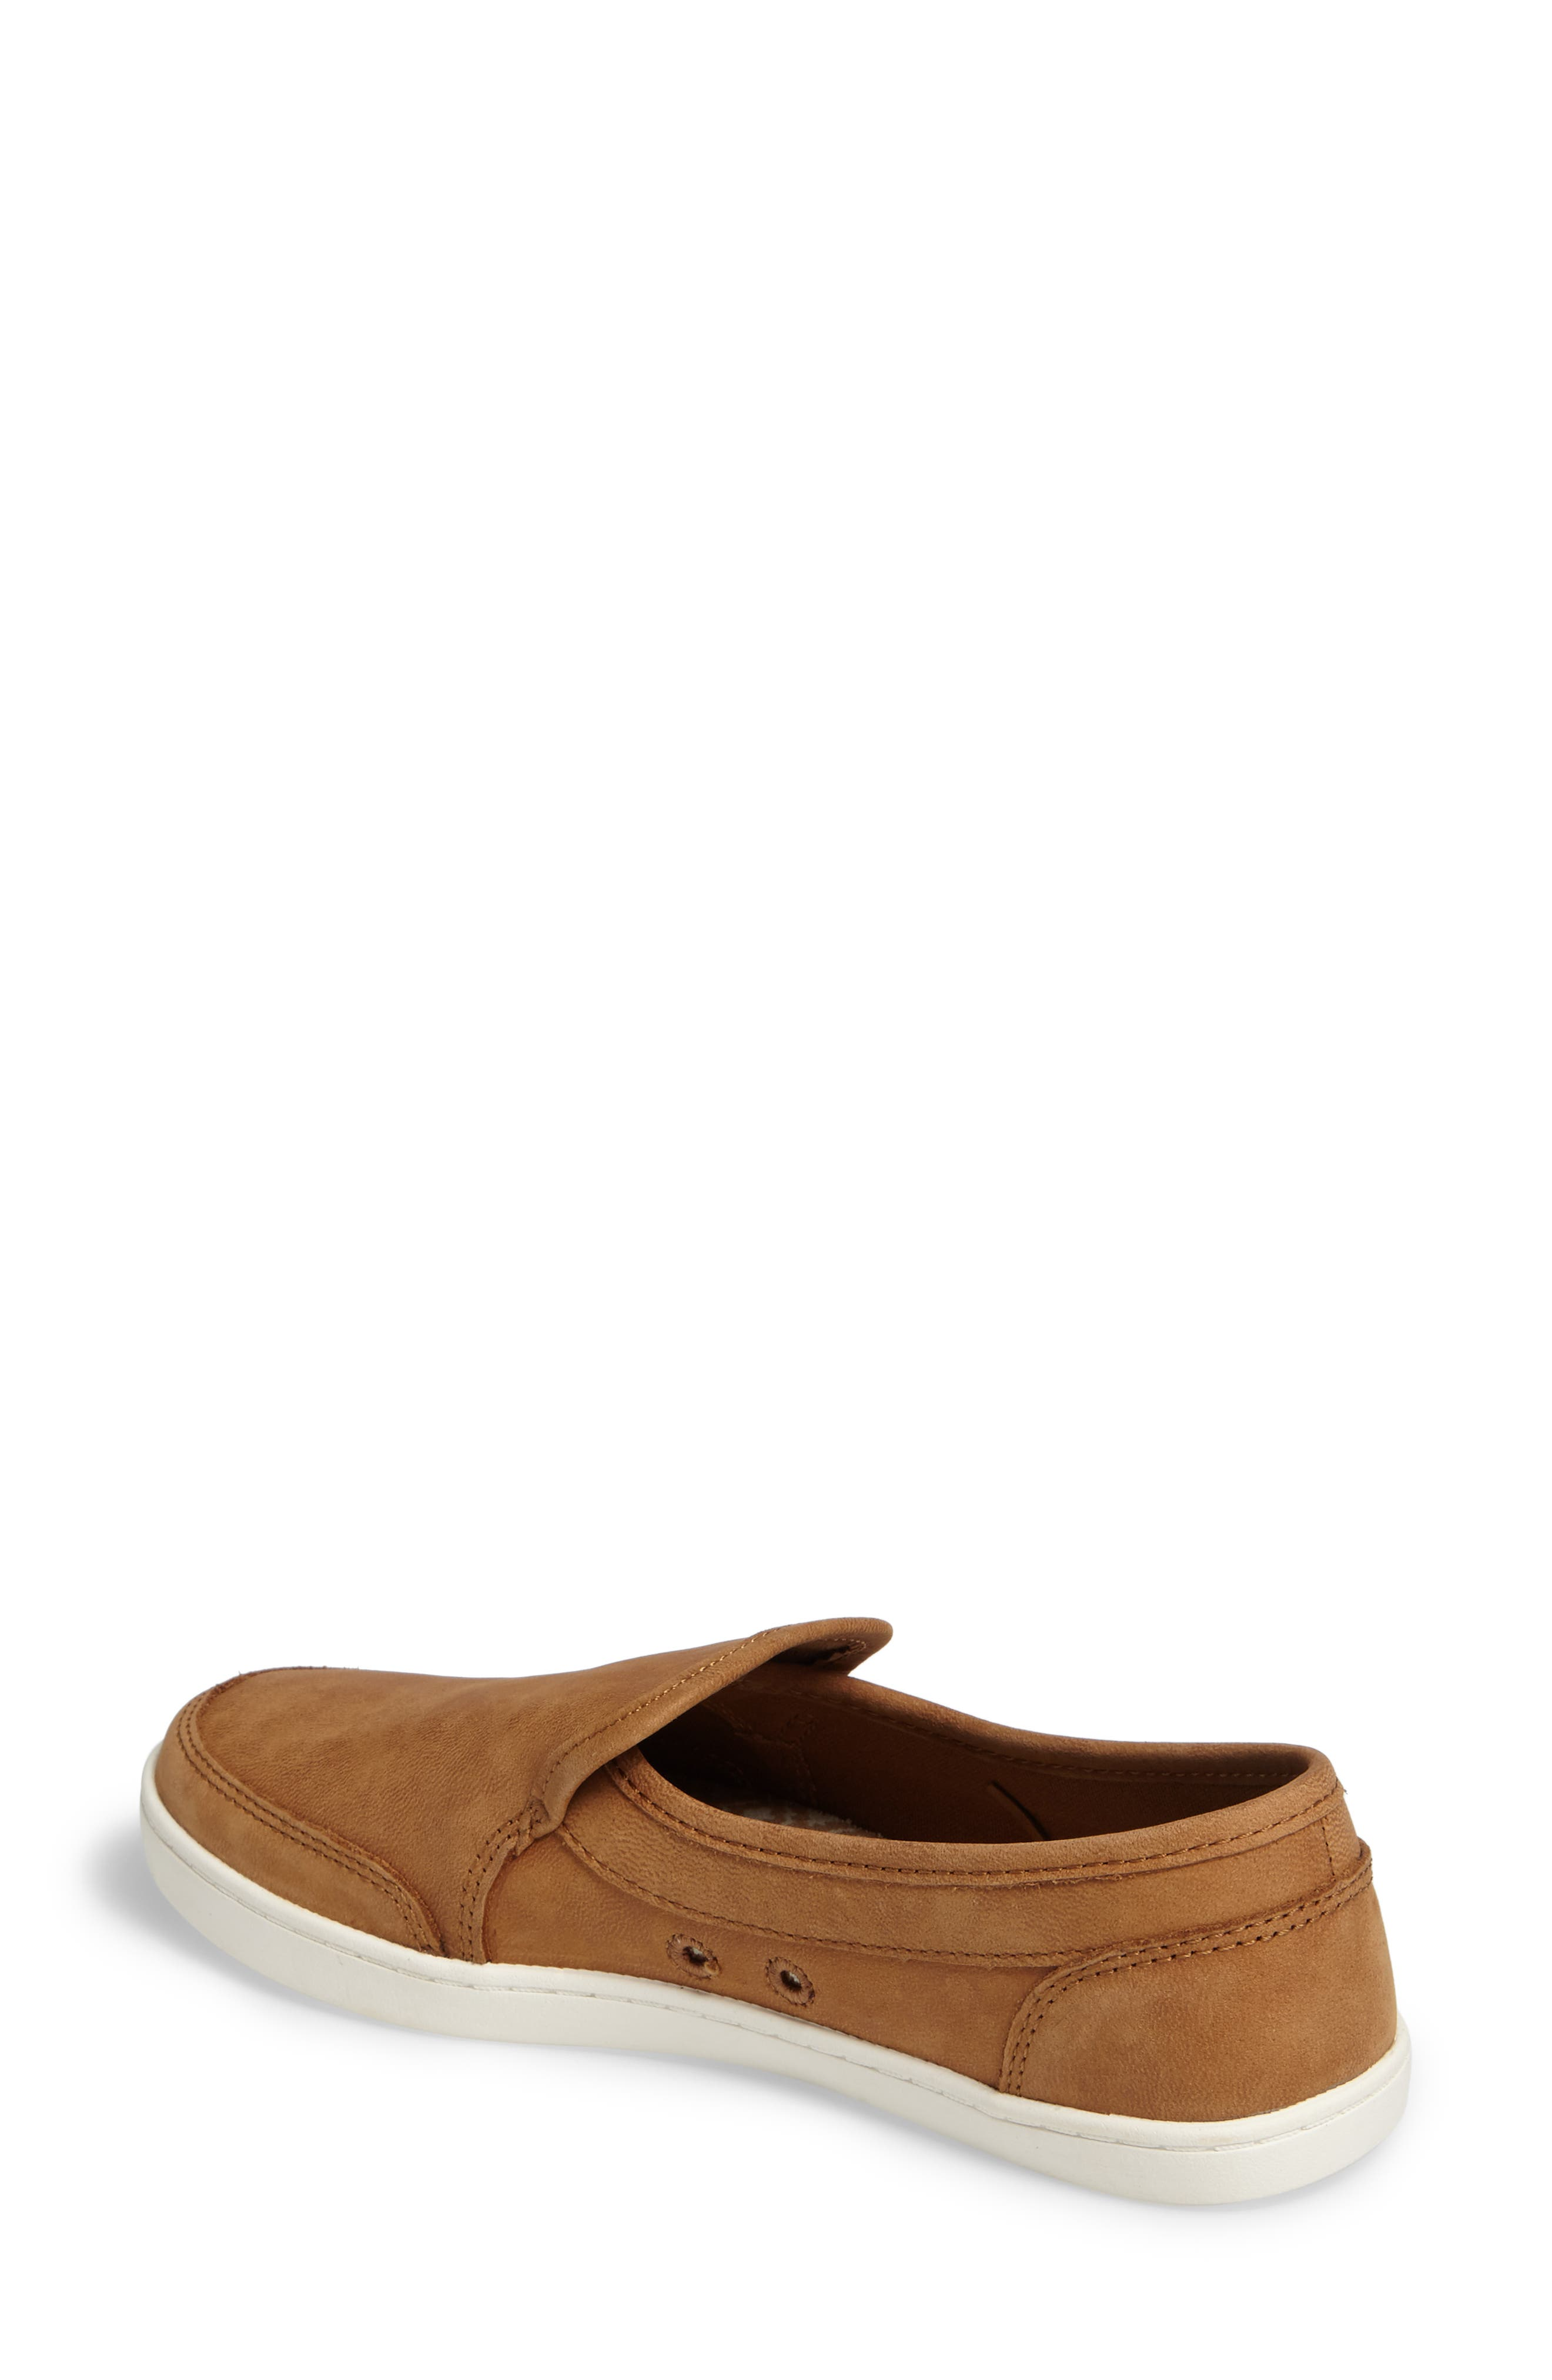 'Pair O Dice' Slip On,                             Alternate thumbnail 2, color,                             Tobacco Brown